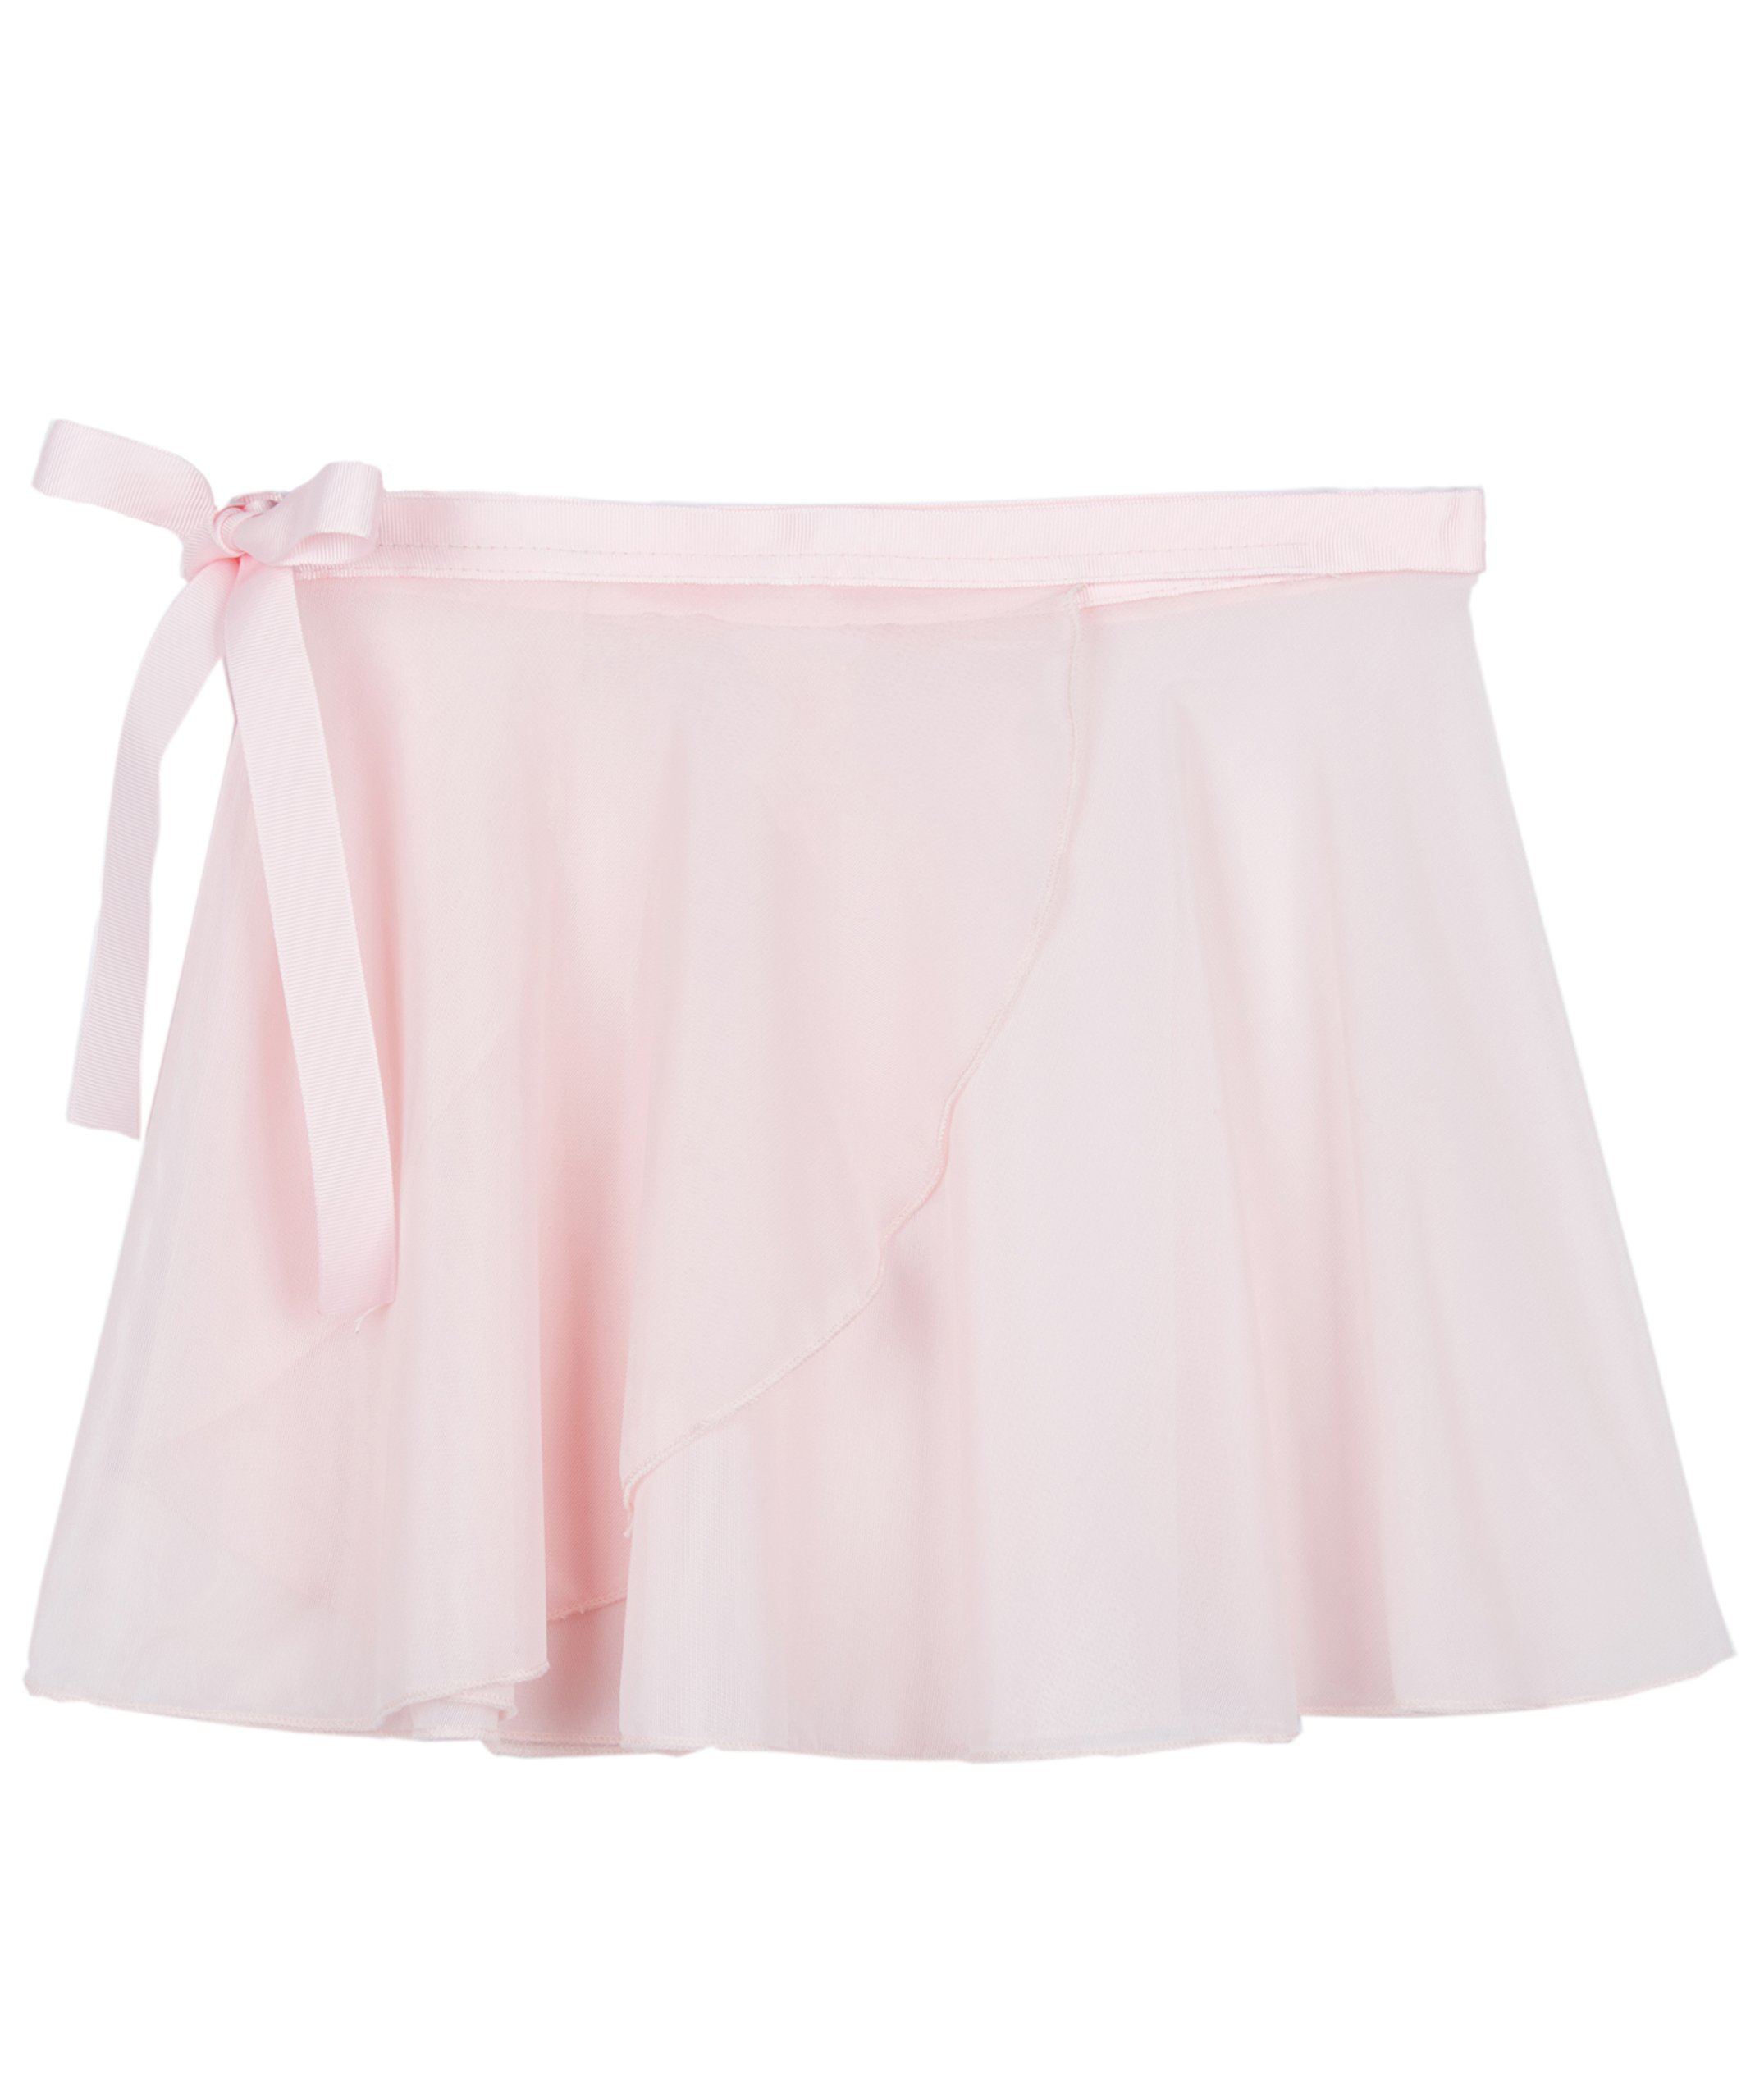 MdnMd Dance Skirt for Girls with Tie Waist (Ballet Pink, Age 12-16)